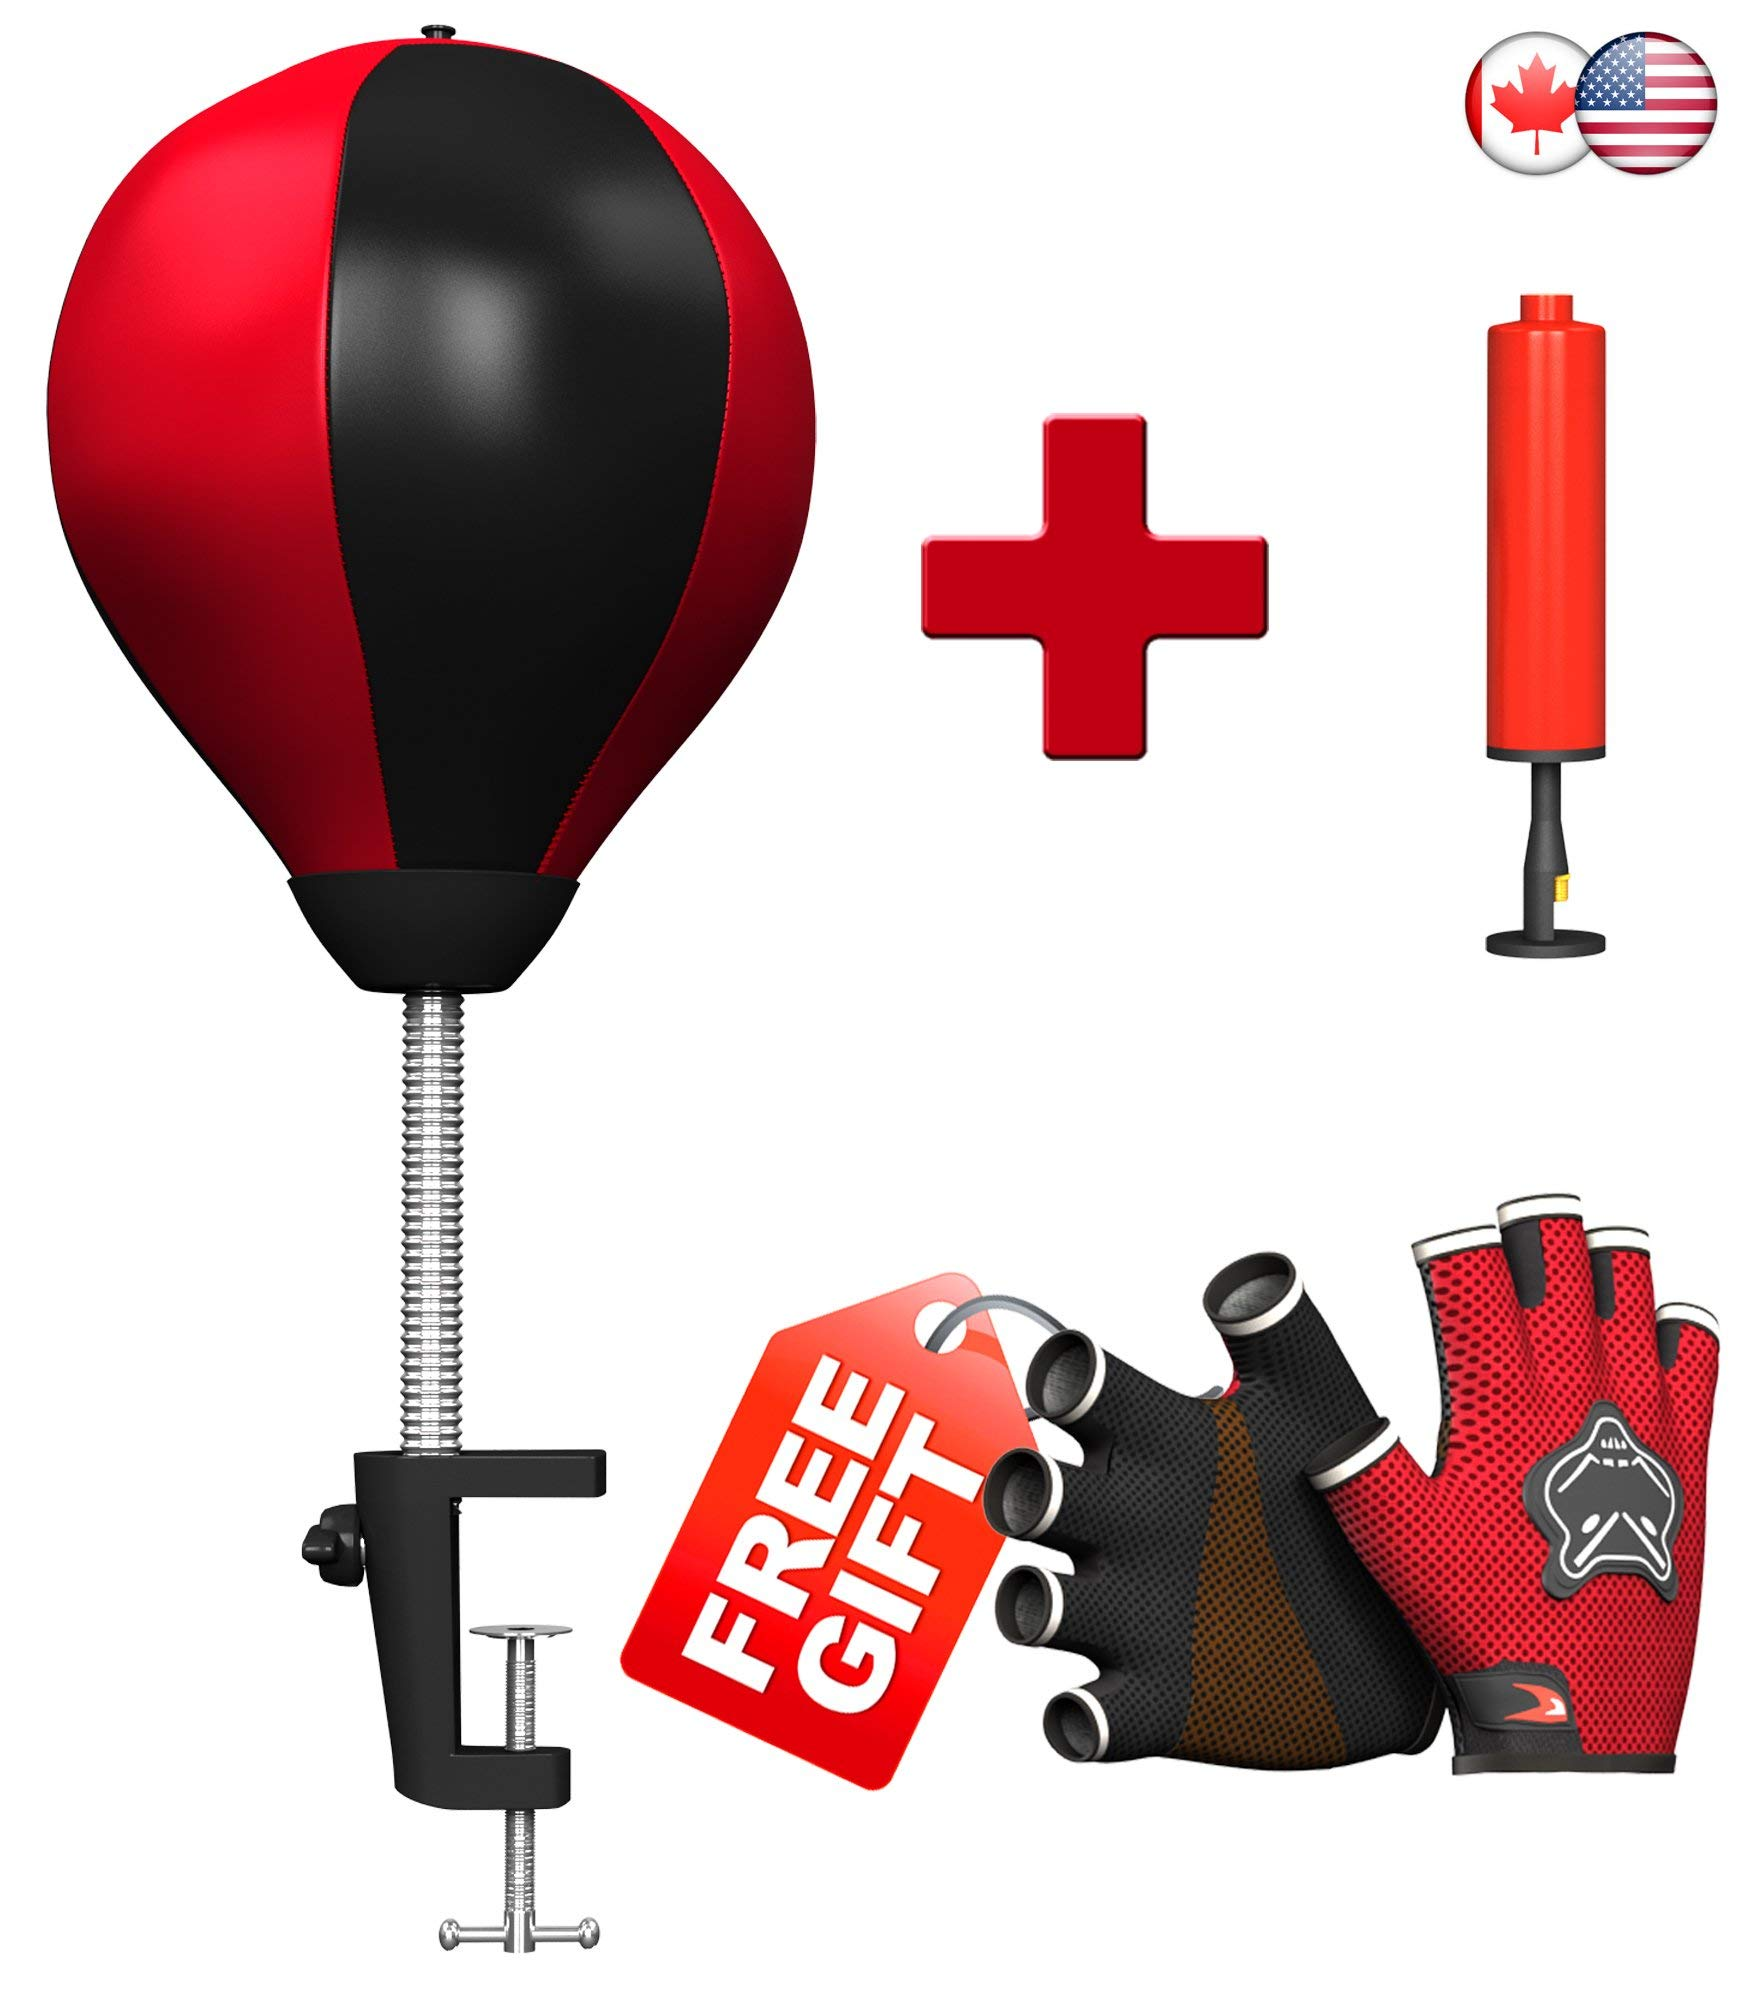 Desk Punching Bag With Clamp – Stress Buster Relieves Stress & Anxiety – Locking Clamp Securely Holds Desktop Punching Bag To Table - Fun Office Desk Accessories - Pump & Fitness Gloves Included